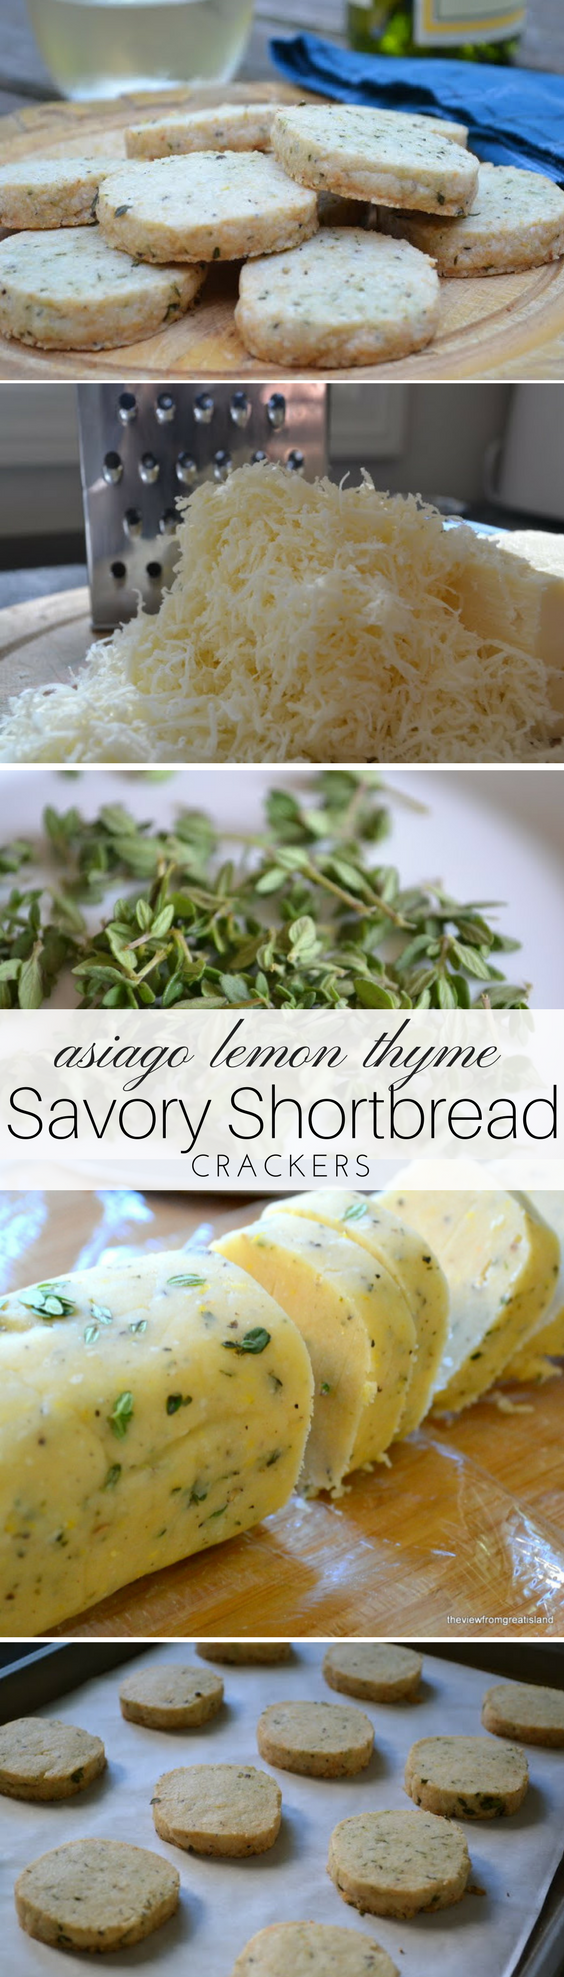 Asiago Lemon Thyme Shortbread is a buttery, savory shortbread cracker perfect for the cocktail hour! Add them to cheese platters for a luxury touch. #appetizer #shortbread #homemadecrackers #winecrackers #asiago